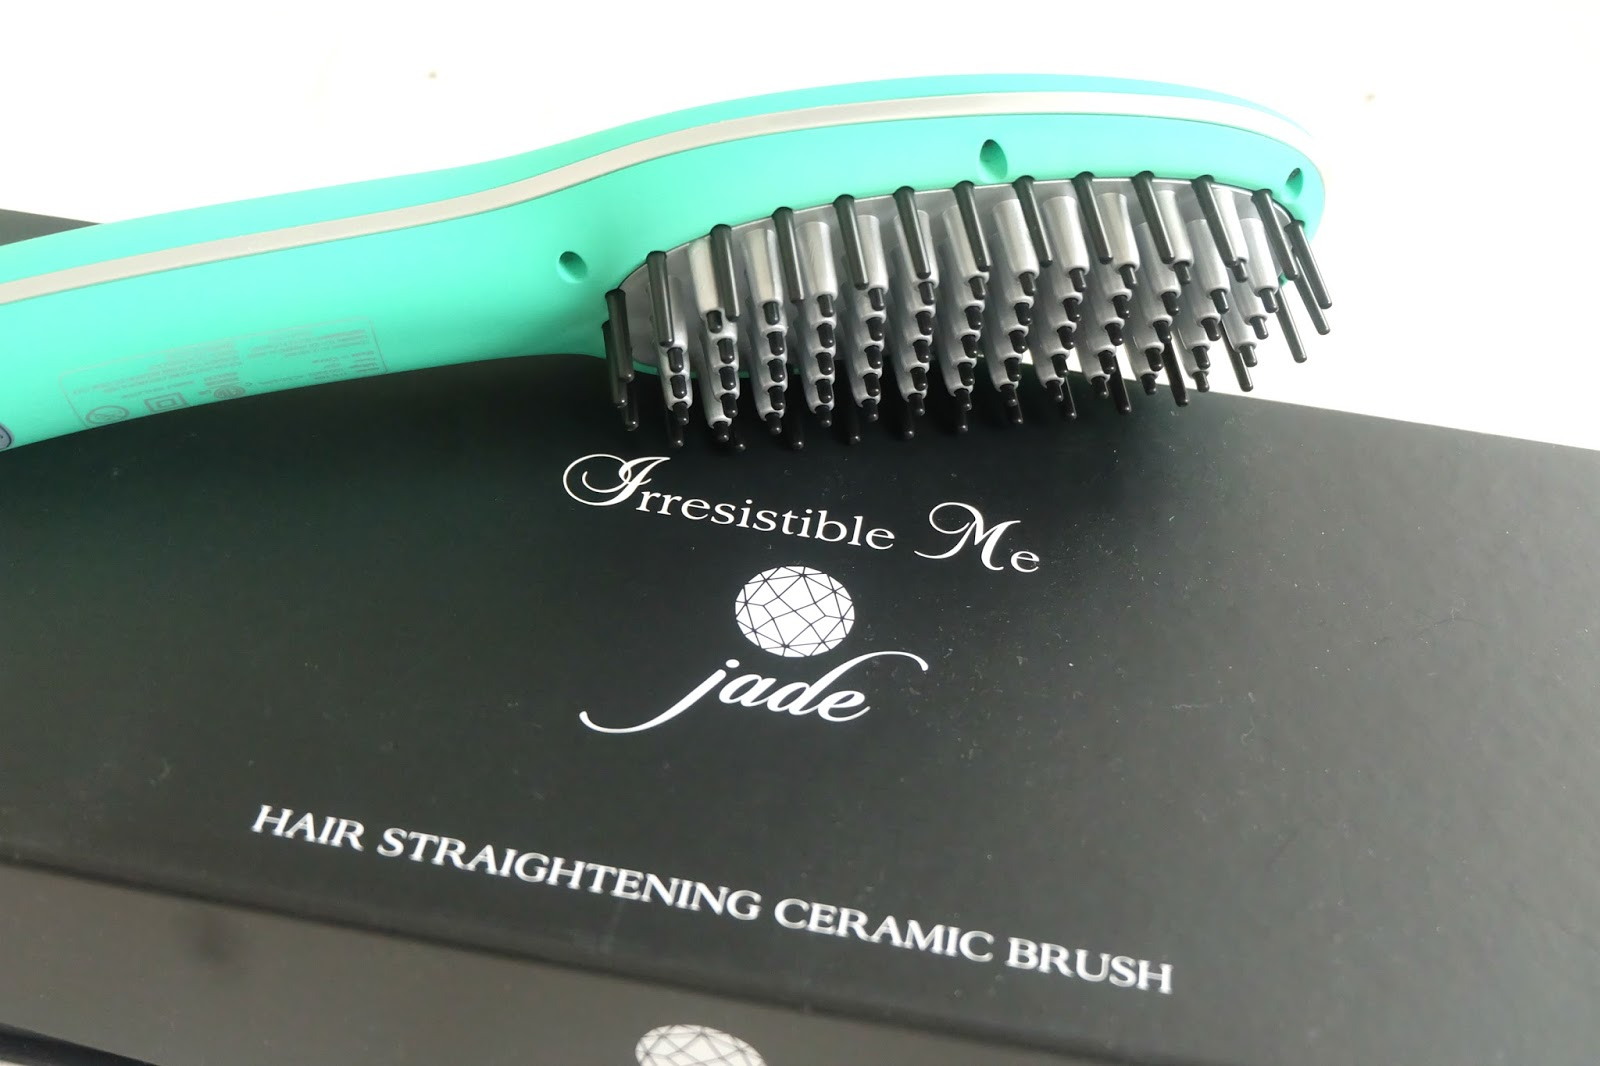 Irresistible Me Jade Straightening Brush Review